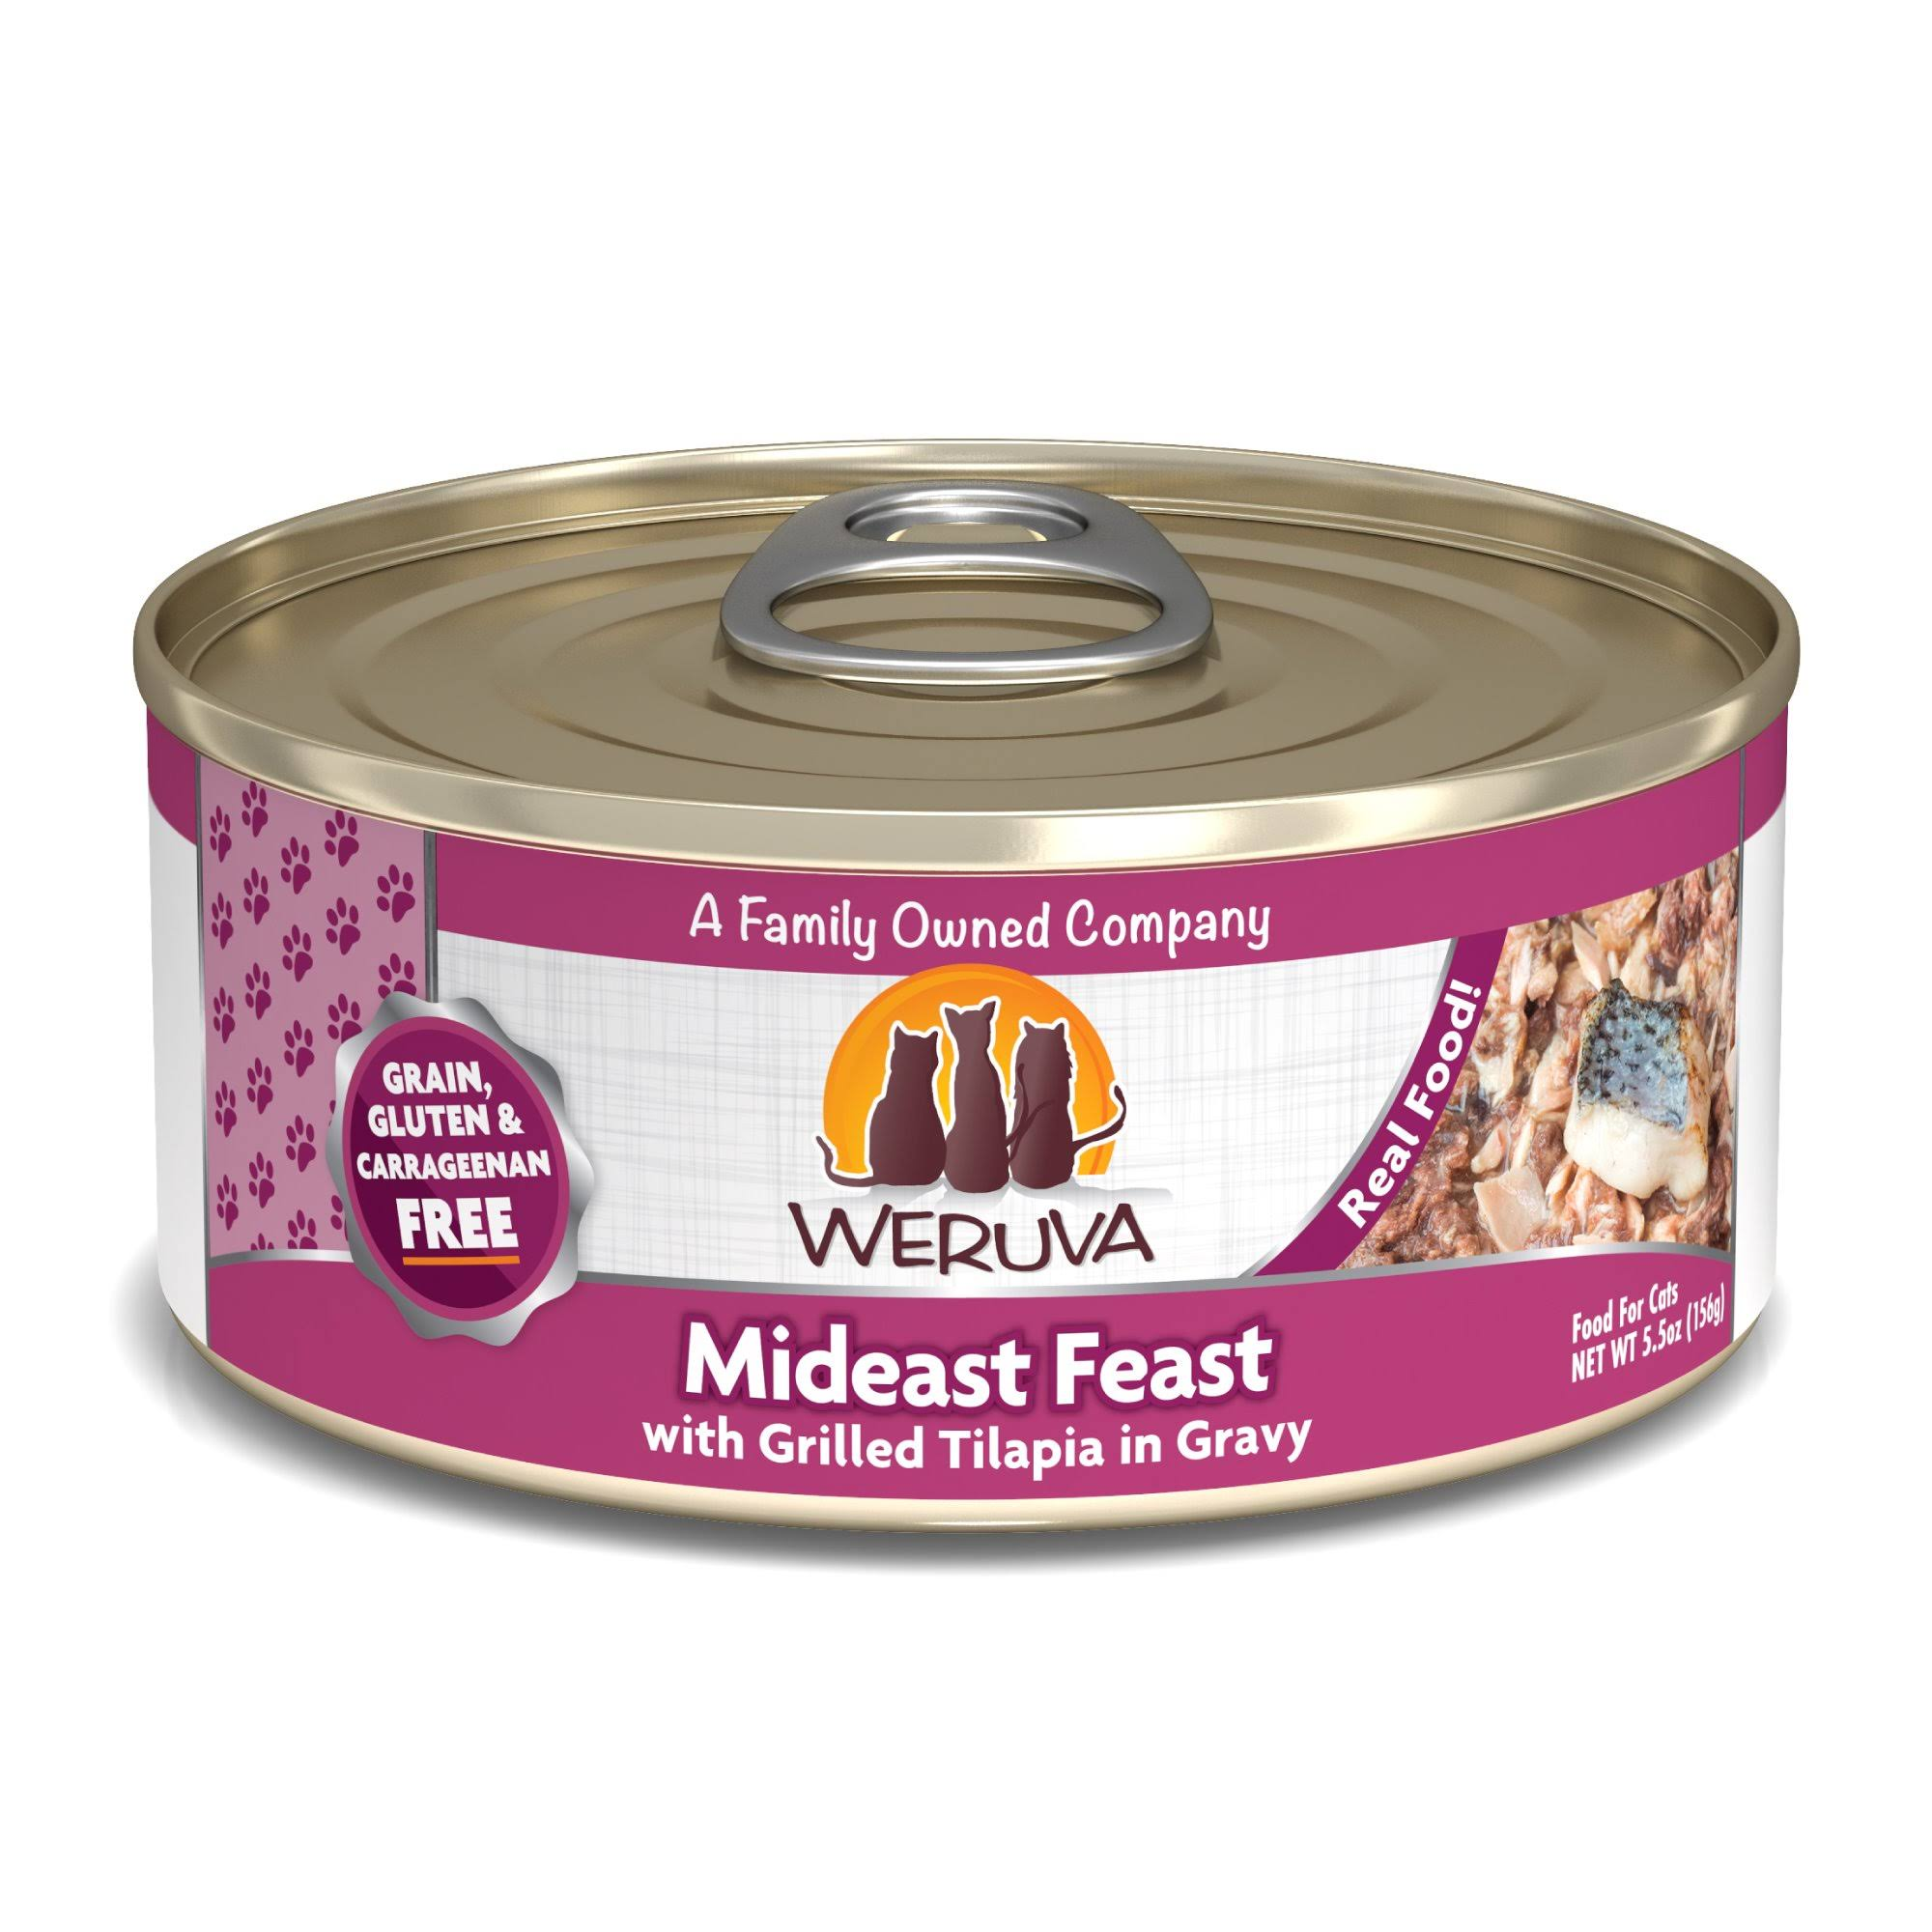 Weruva Mideast Feast Cat Food - with Grilled Tilapia in Gravy, 5.5oz